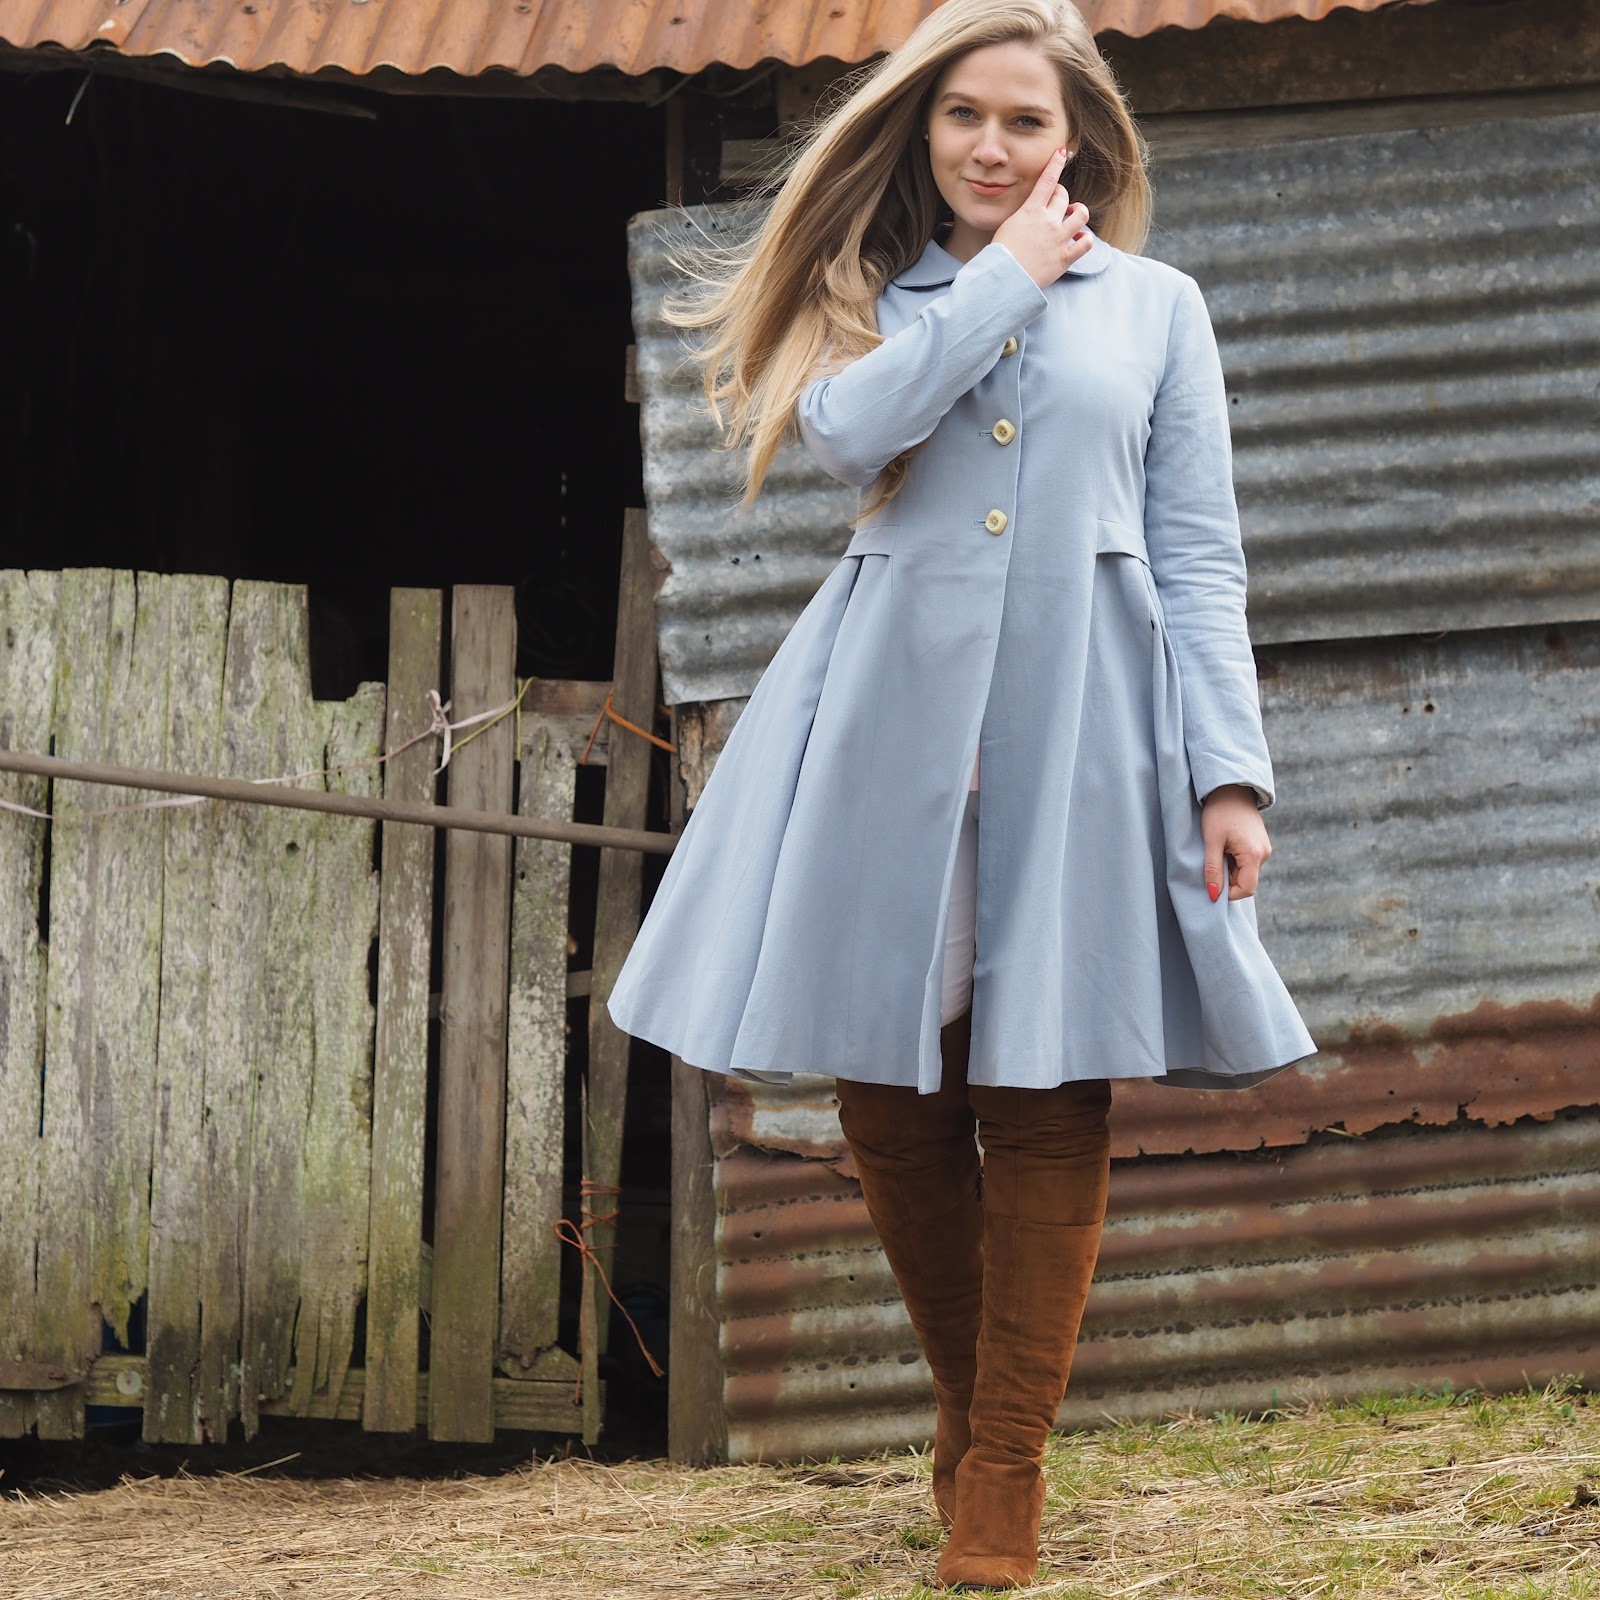 Blonde girl wearing blue coat and brown boots standing in front of old stables